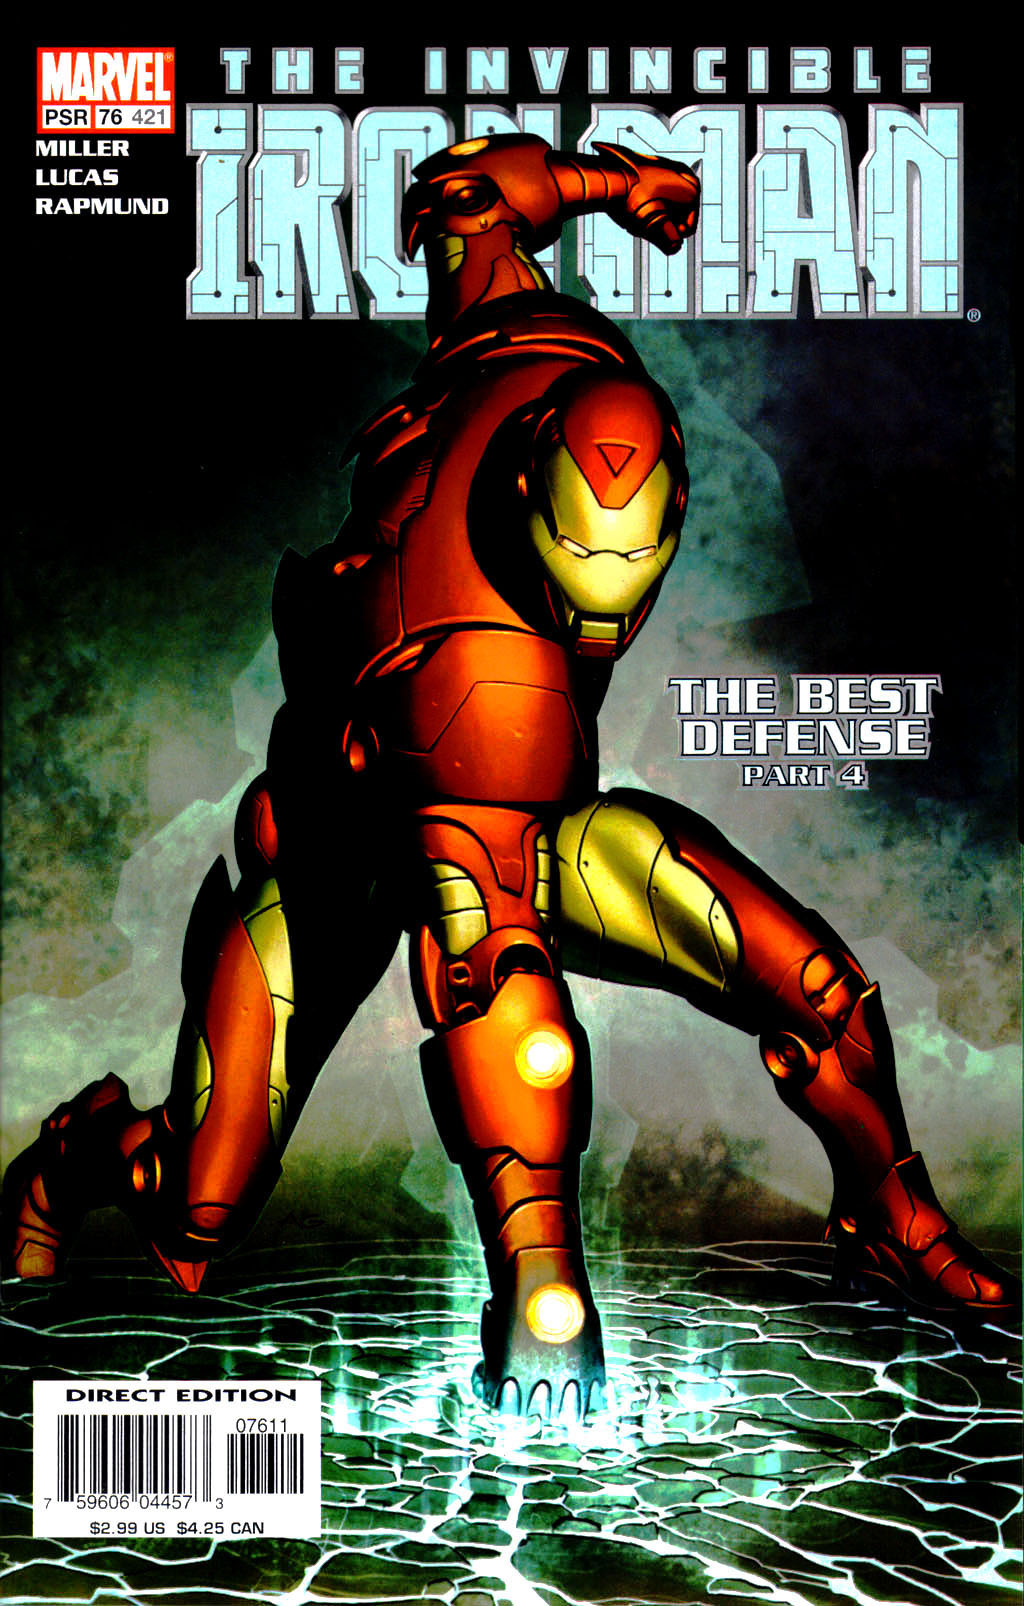 comicbookcovers:  Iron Man #76, March 2004, cover by Adi Granov